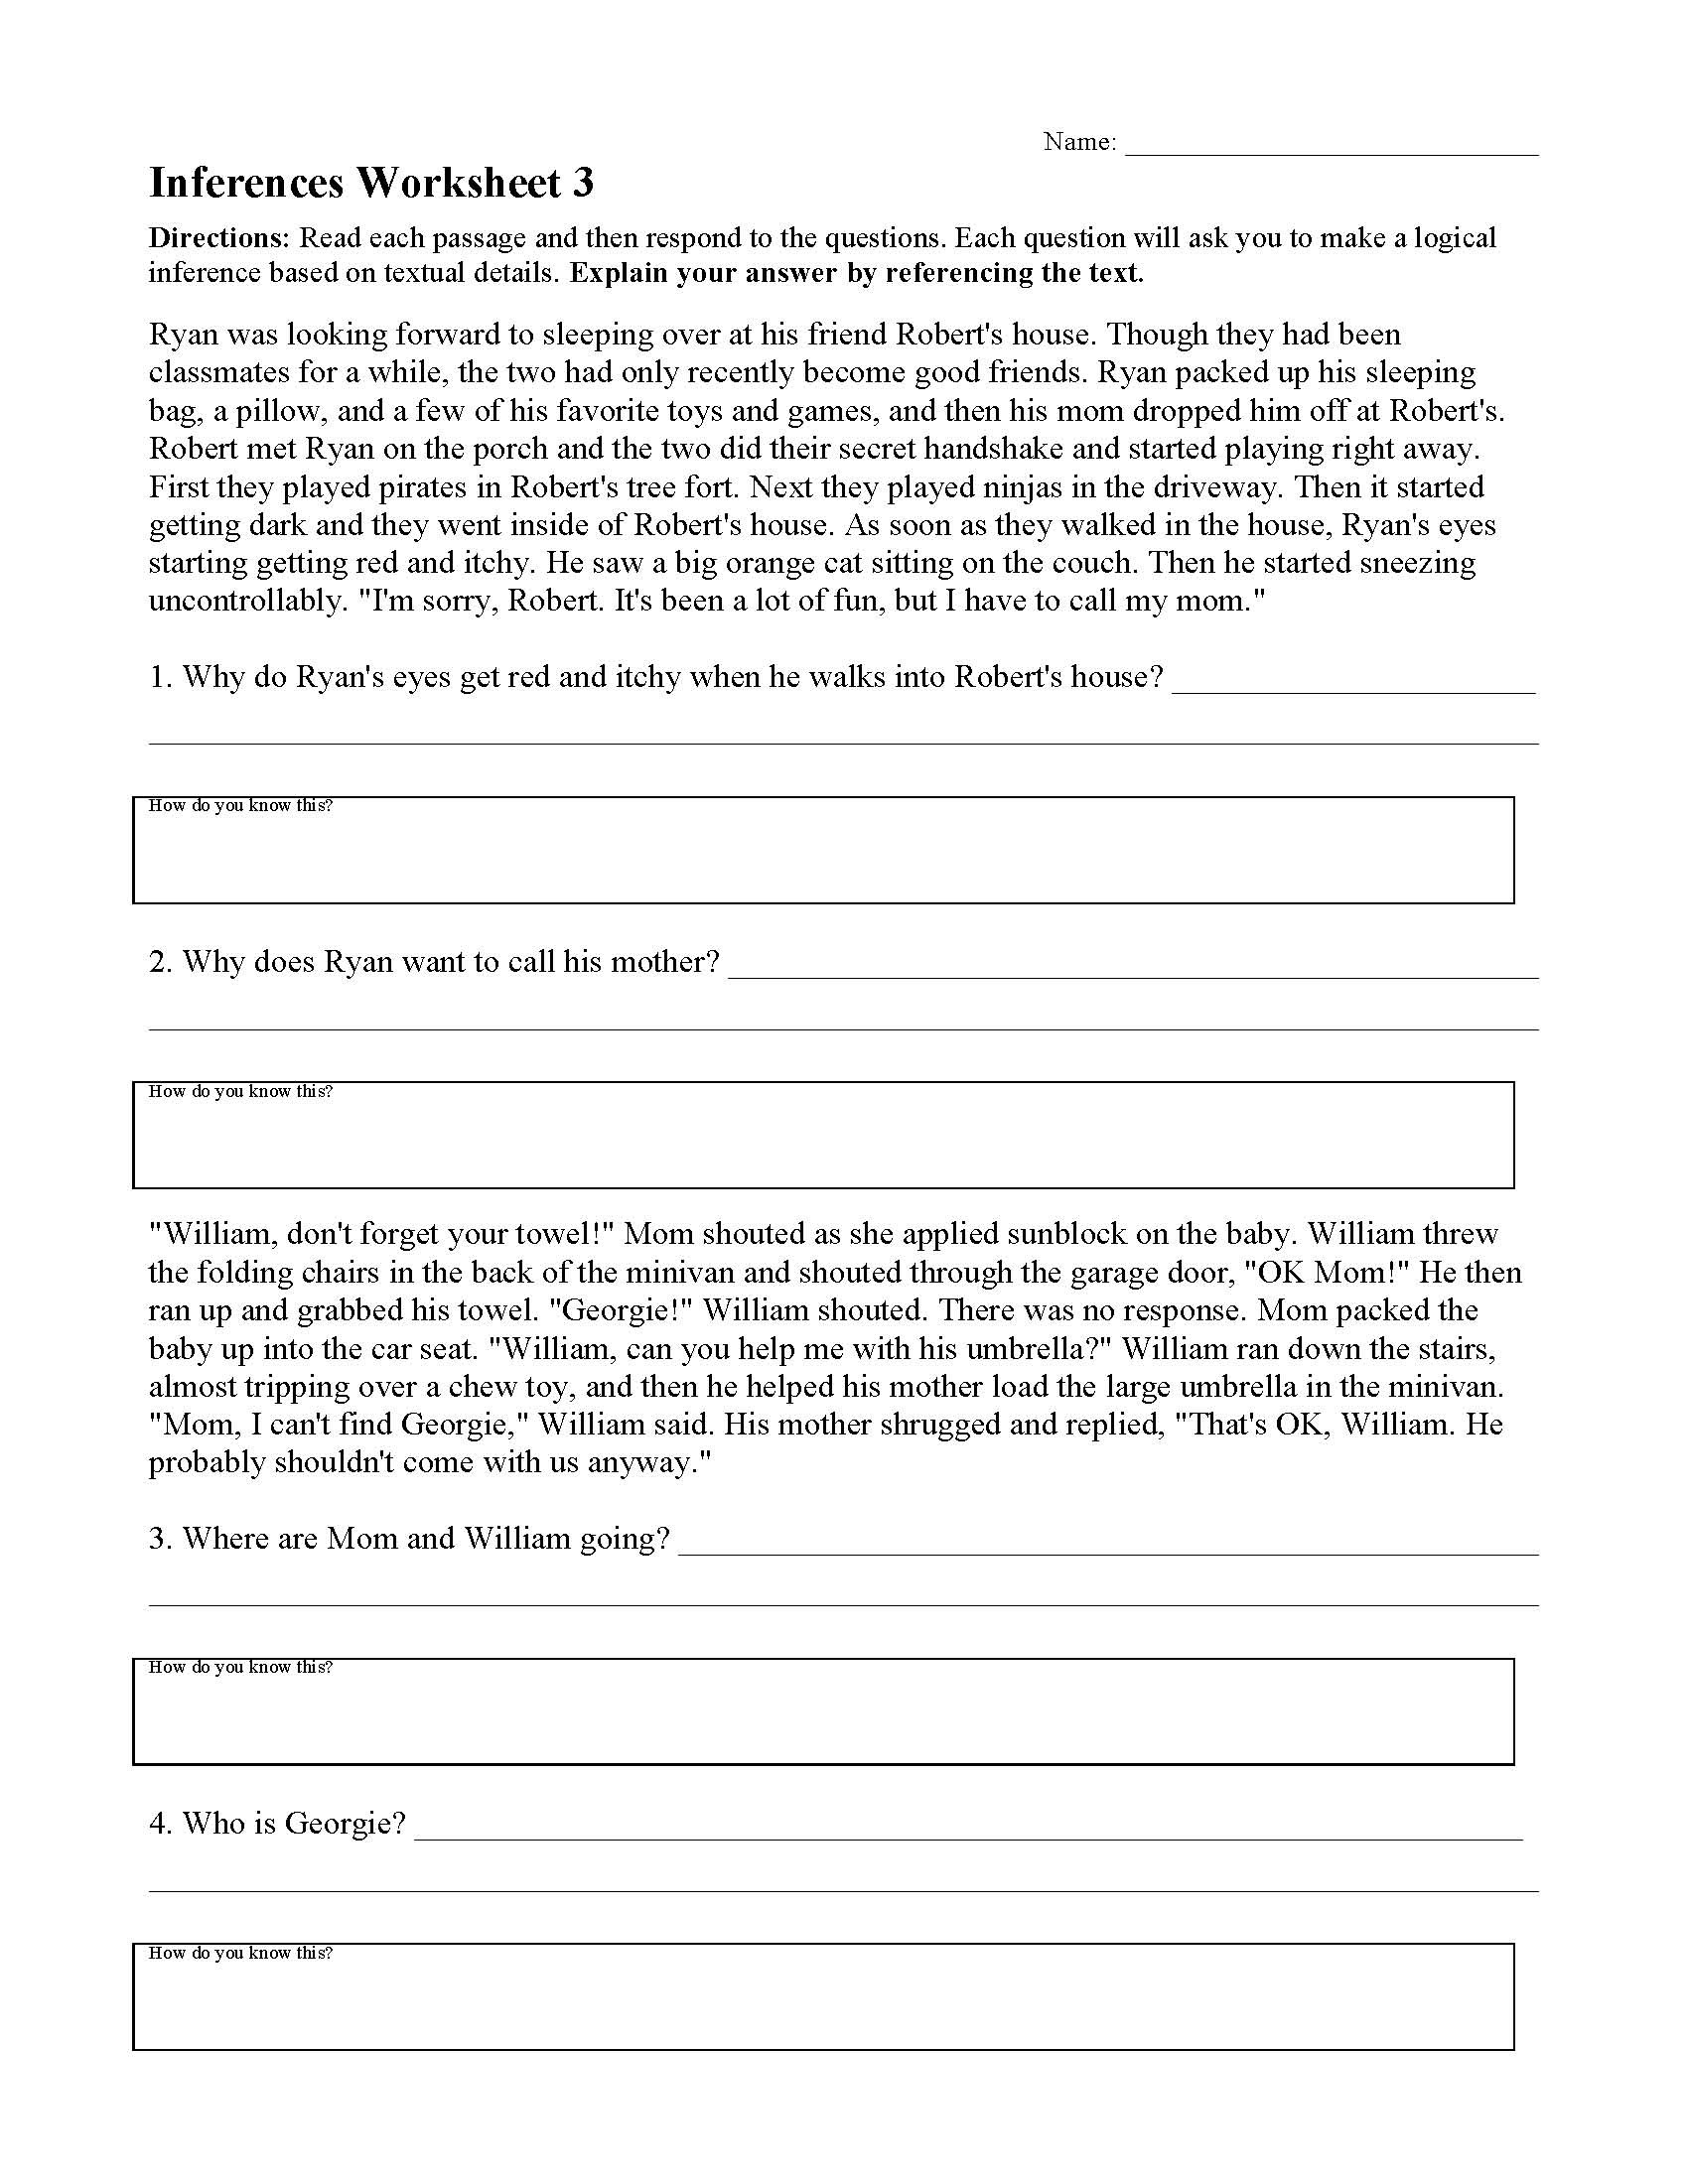 Making Inferences Worksheets 4th Grade Inferences Worksheets